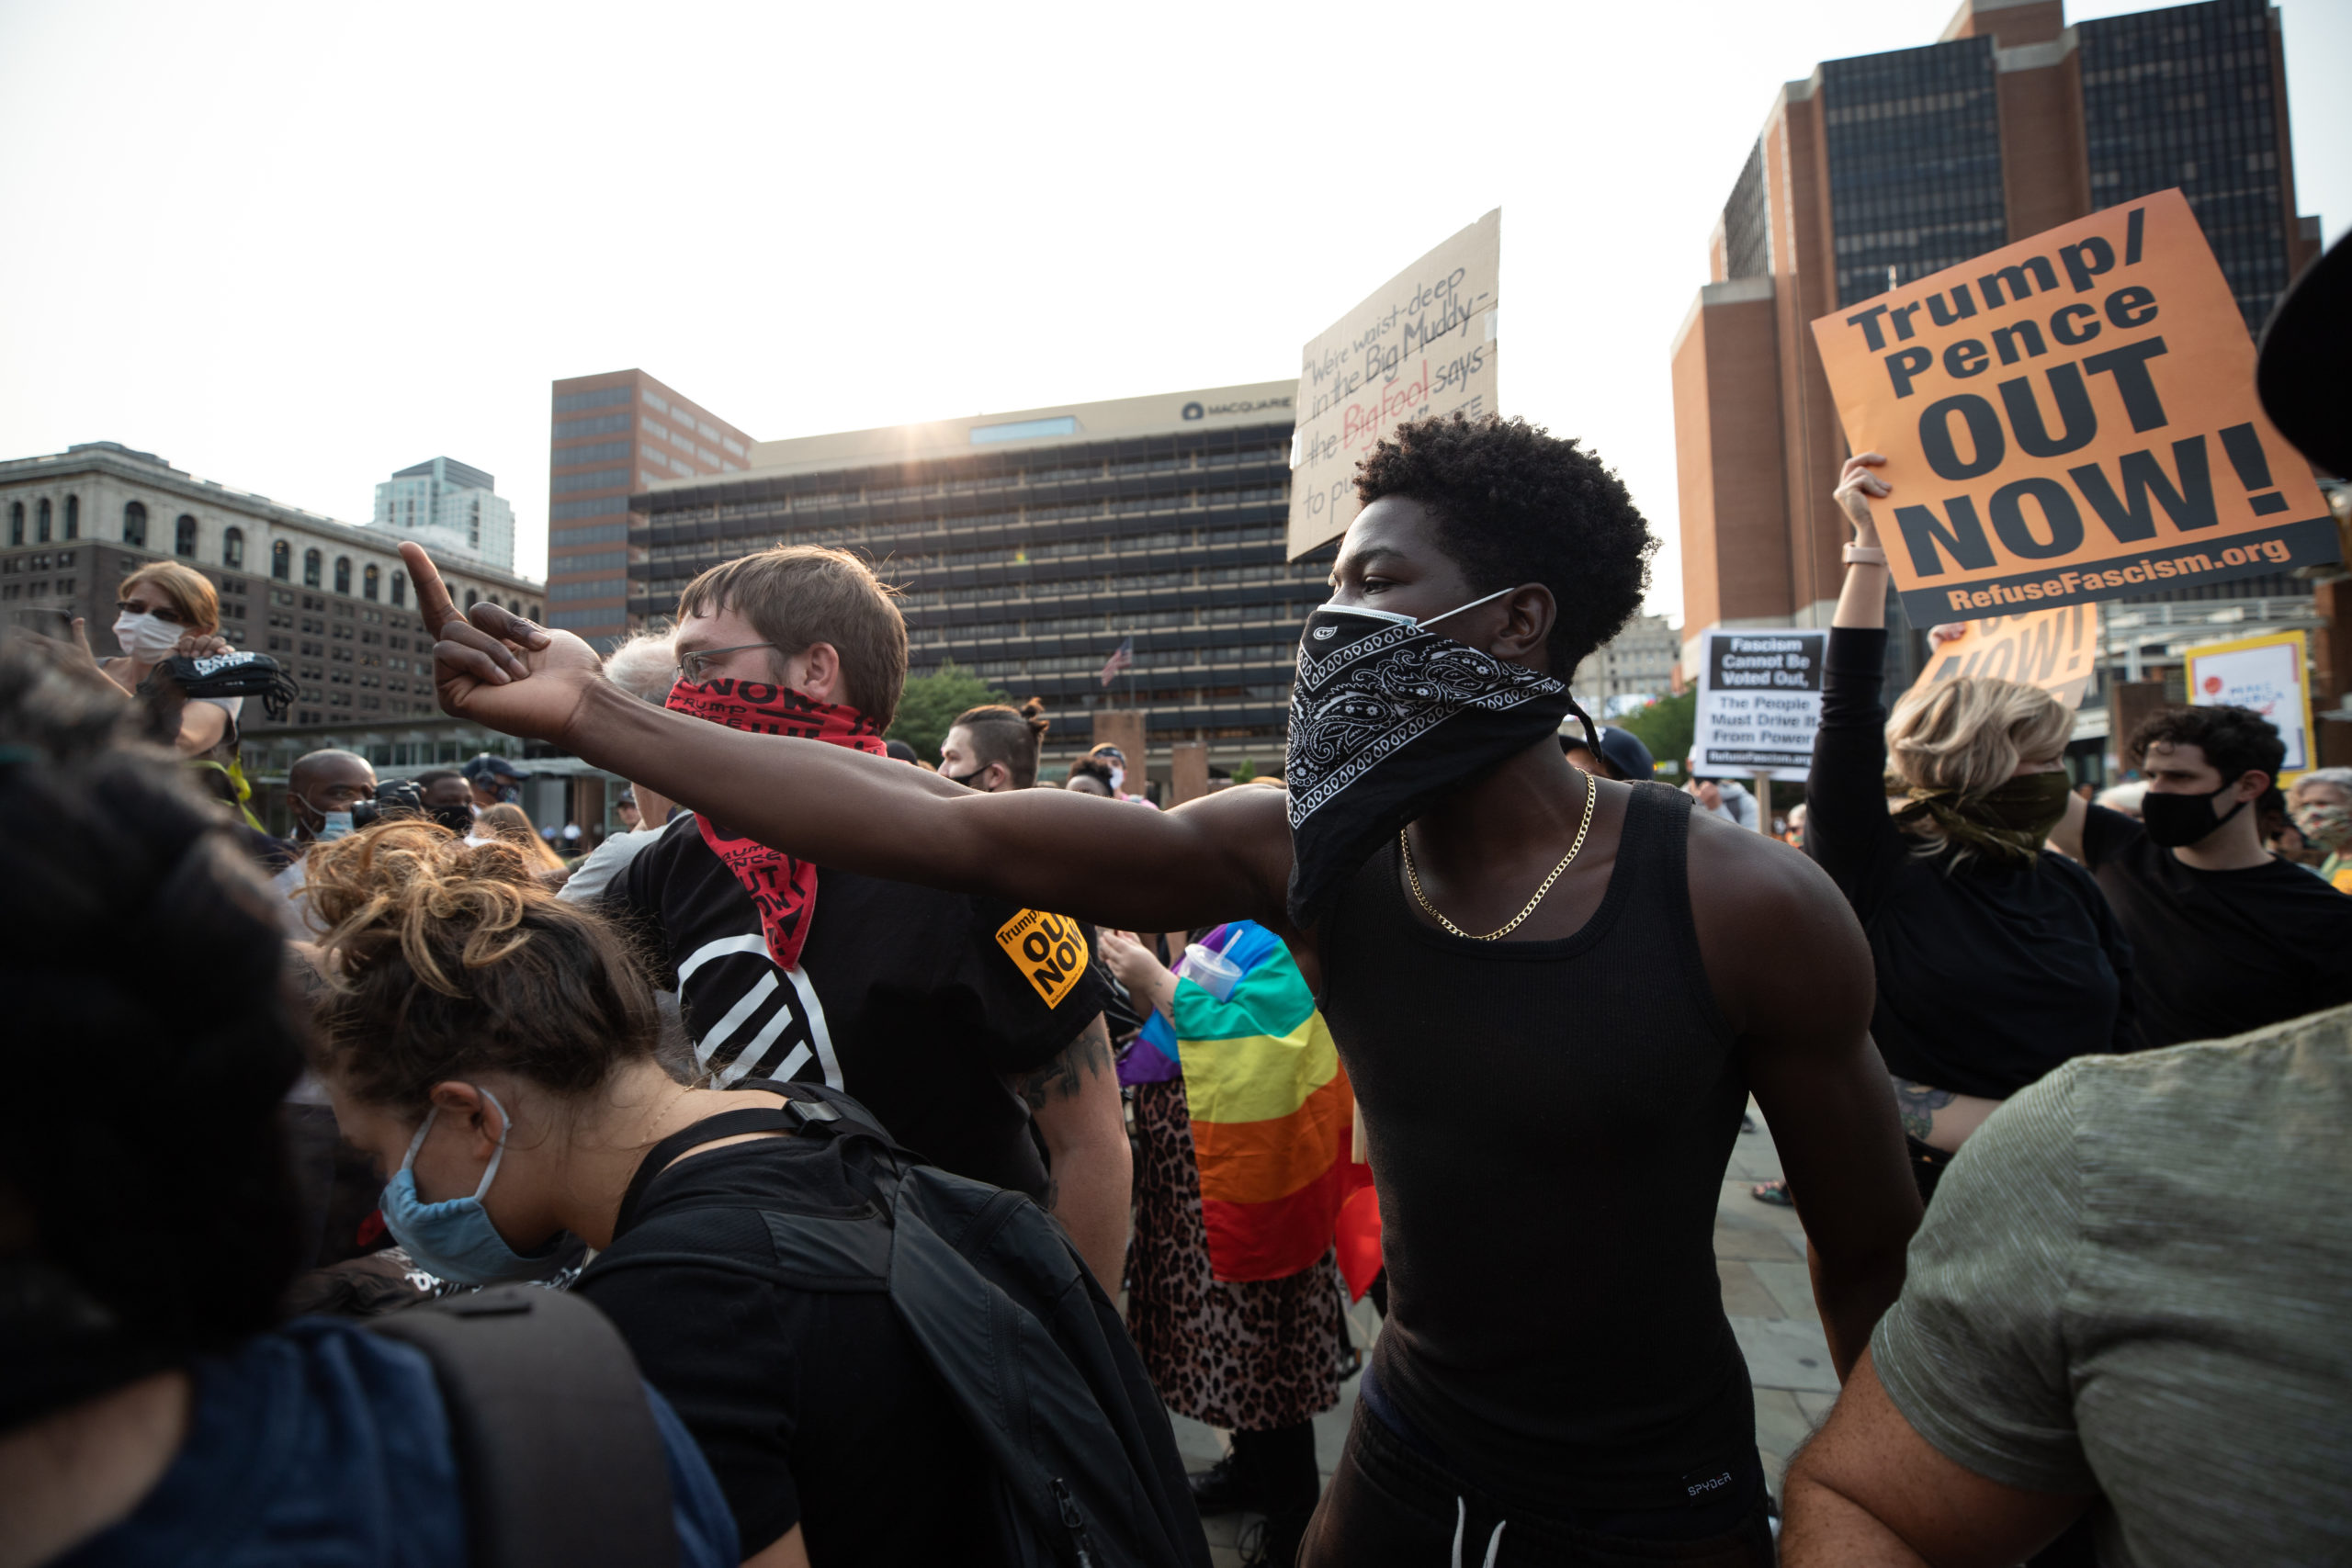 A protester flashes his middle finger at Trump supporters in Philadelphia, Pennsylvania on Sept. 15, 2020. (Photo: Kaylee Greenlee / DCNF)